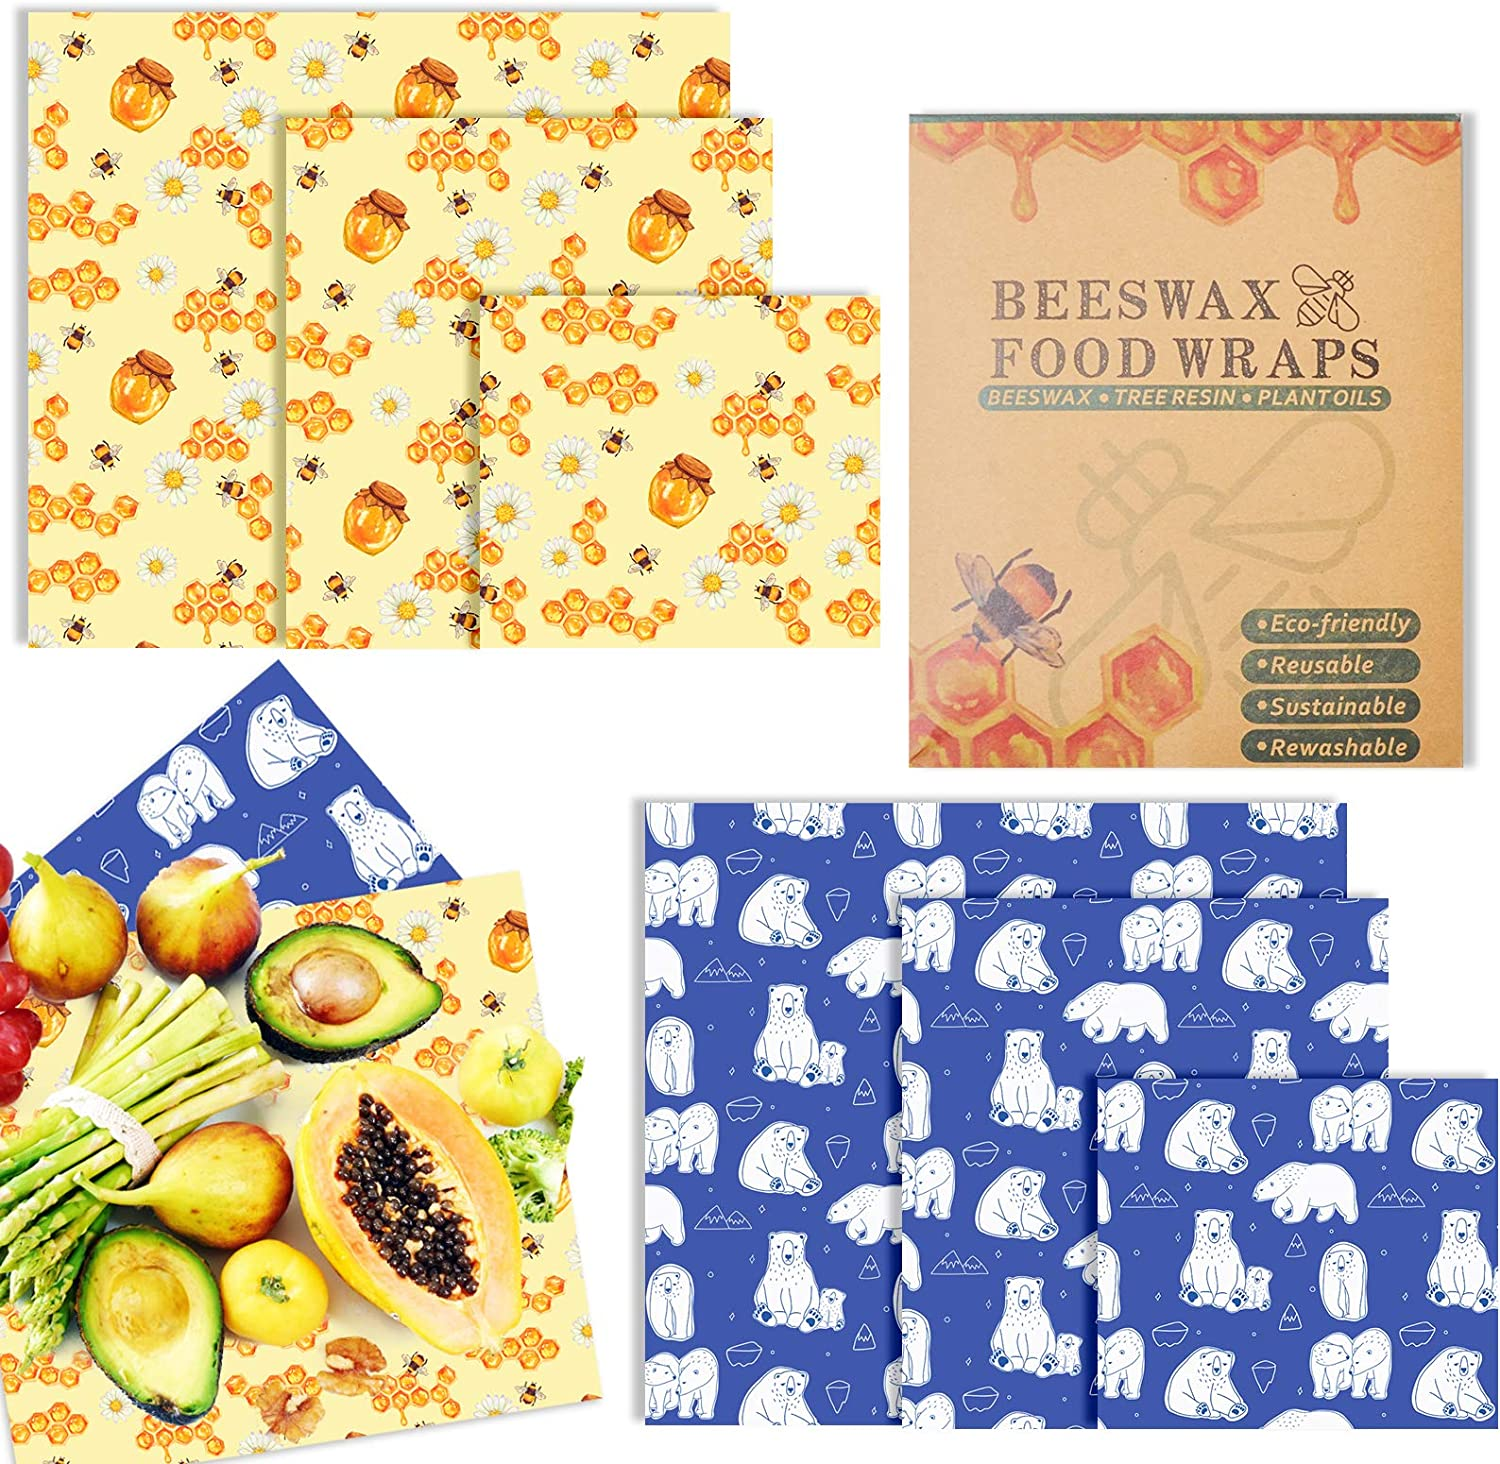 Beeswax Reusable Food Wraps 6 Packs Eco Friendly Reusable Bee Wraps Replacement Organic Wax Wrap for Food Storage, Washable Bowl Cover Sandwich Wrappers in 3 Sizes